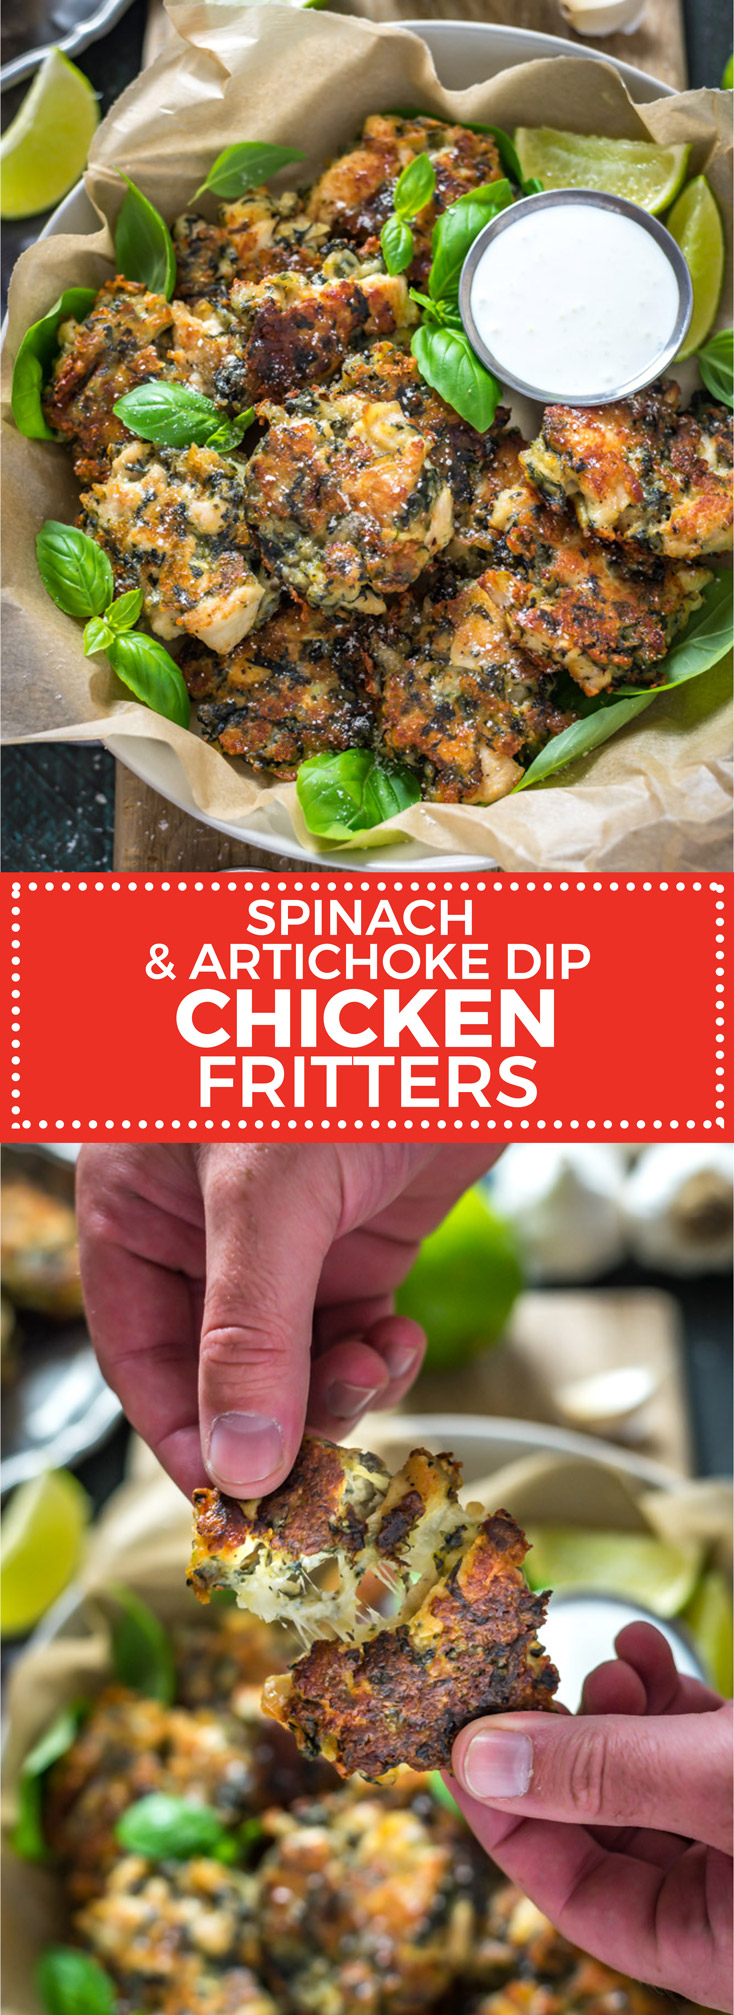 Spinach and Artichoke Dip Chicken Fritters. These fritters are going to be your new favorite way to use chicken breasts. They're tender and juicy on the inside with plenty of melted cheese and a crisp crust, and they taste just like your favorite dip! | hostthetoast.com